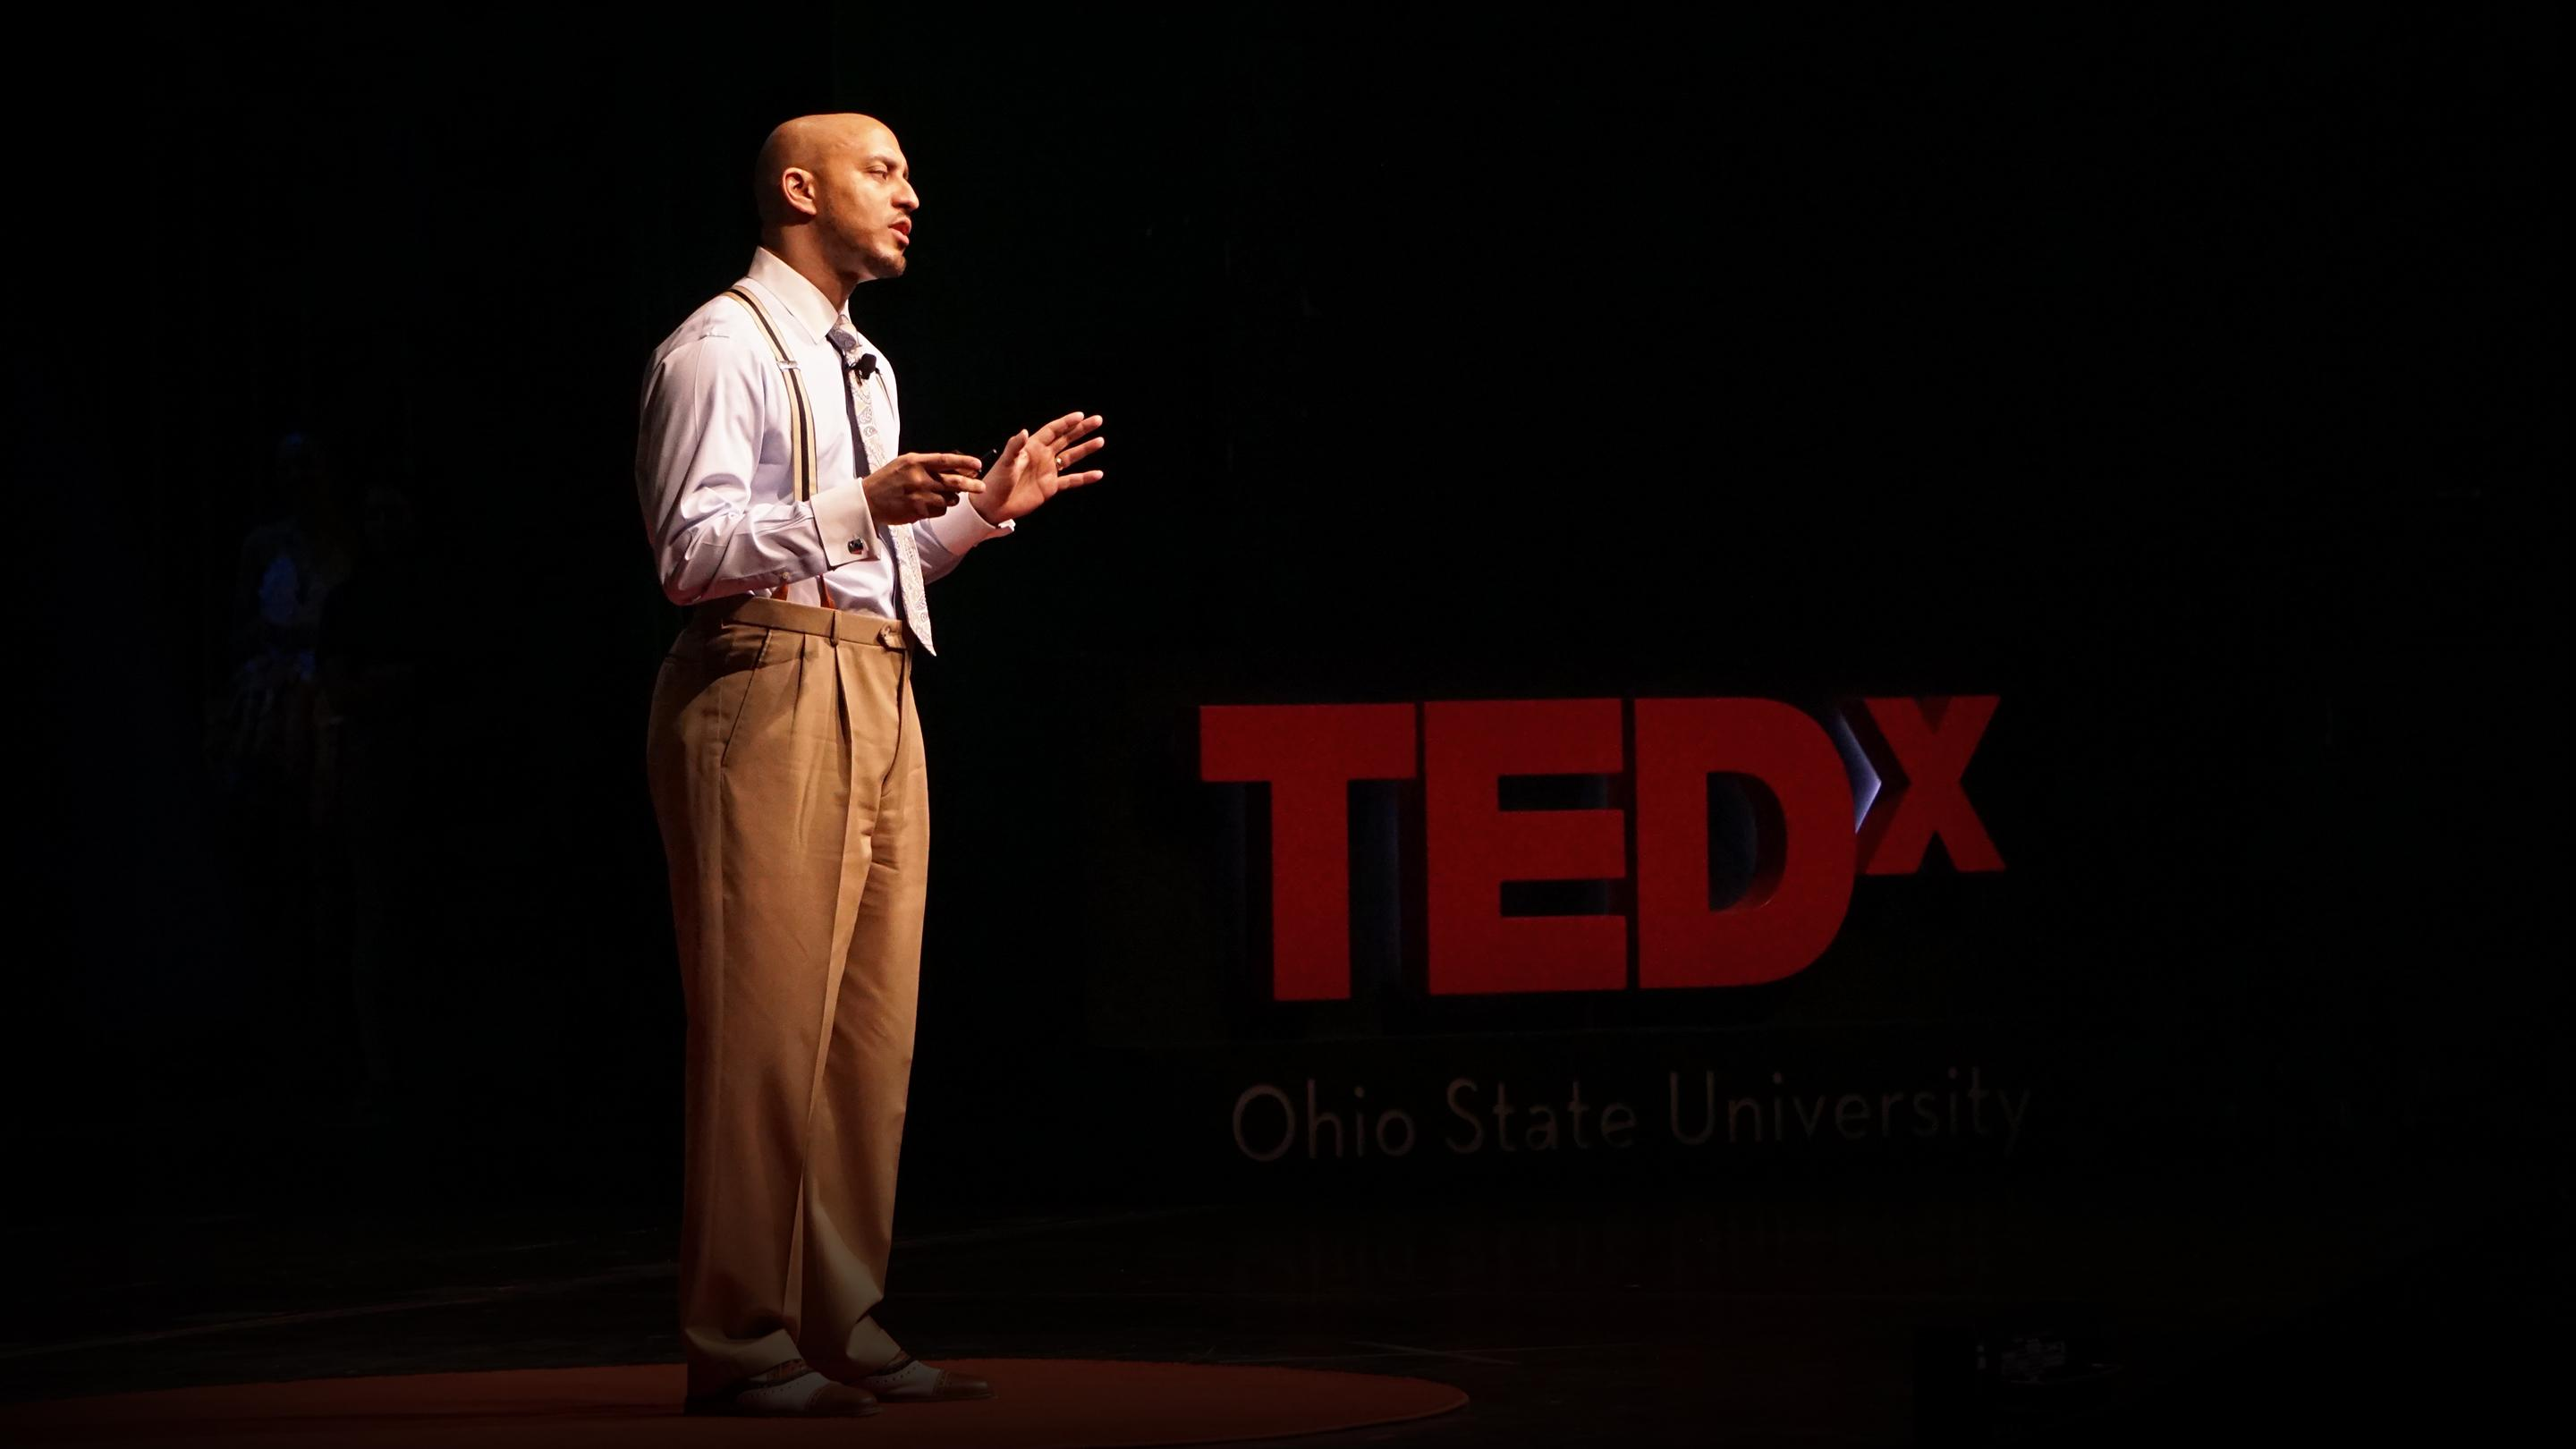 Why we must confront hard historical truths | Hasan Kwame Jeffries